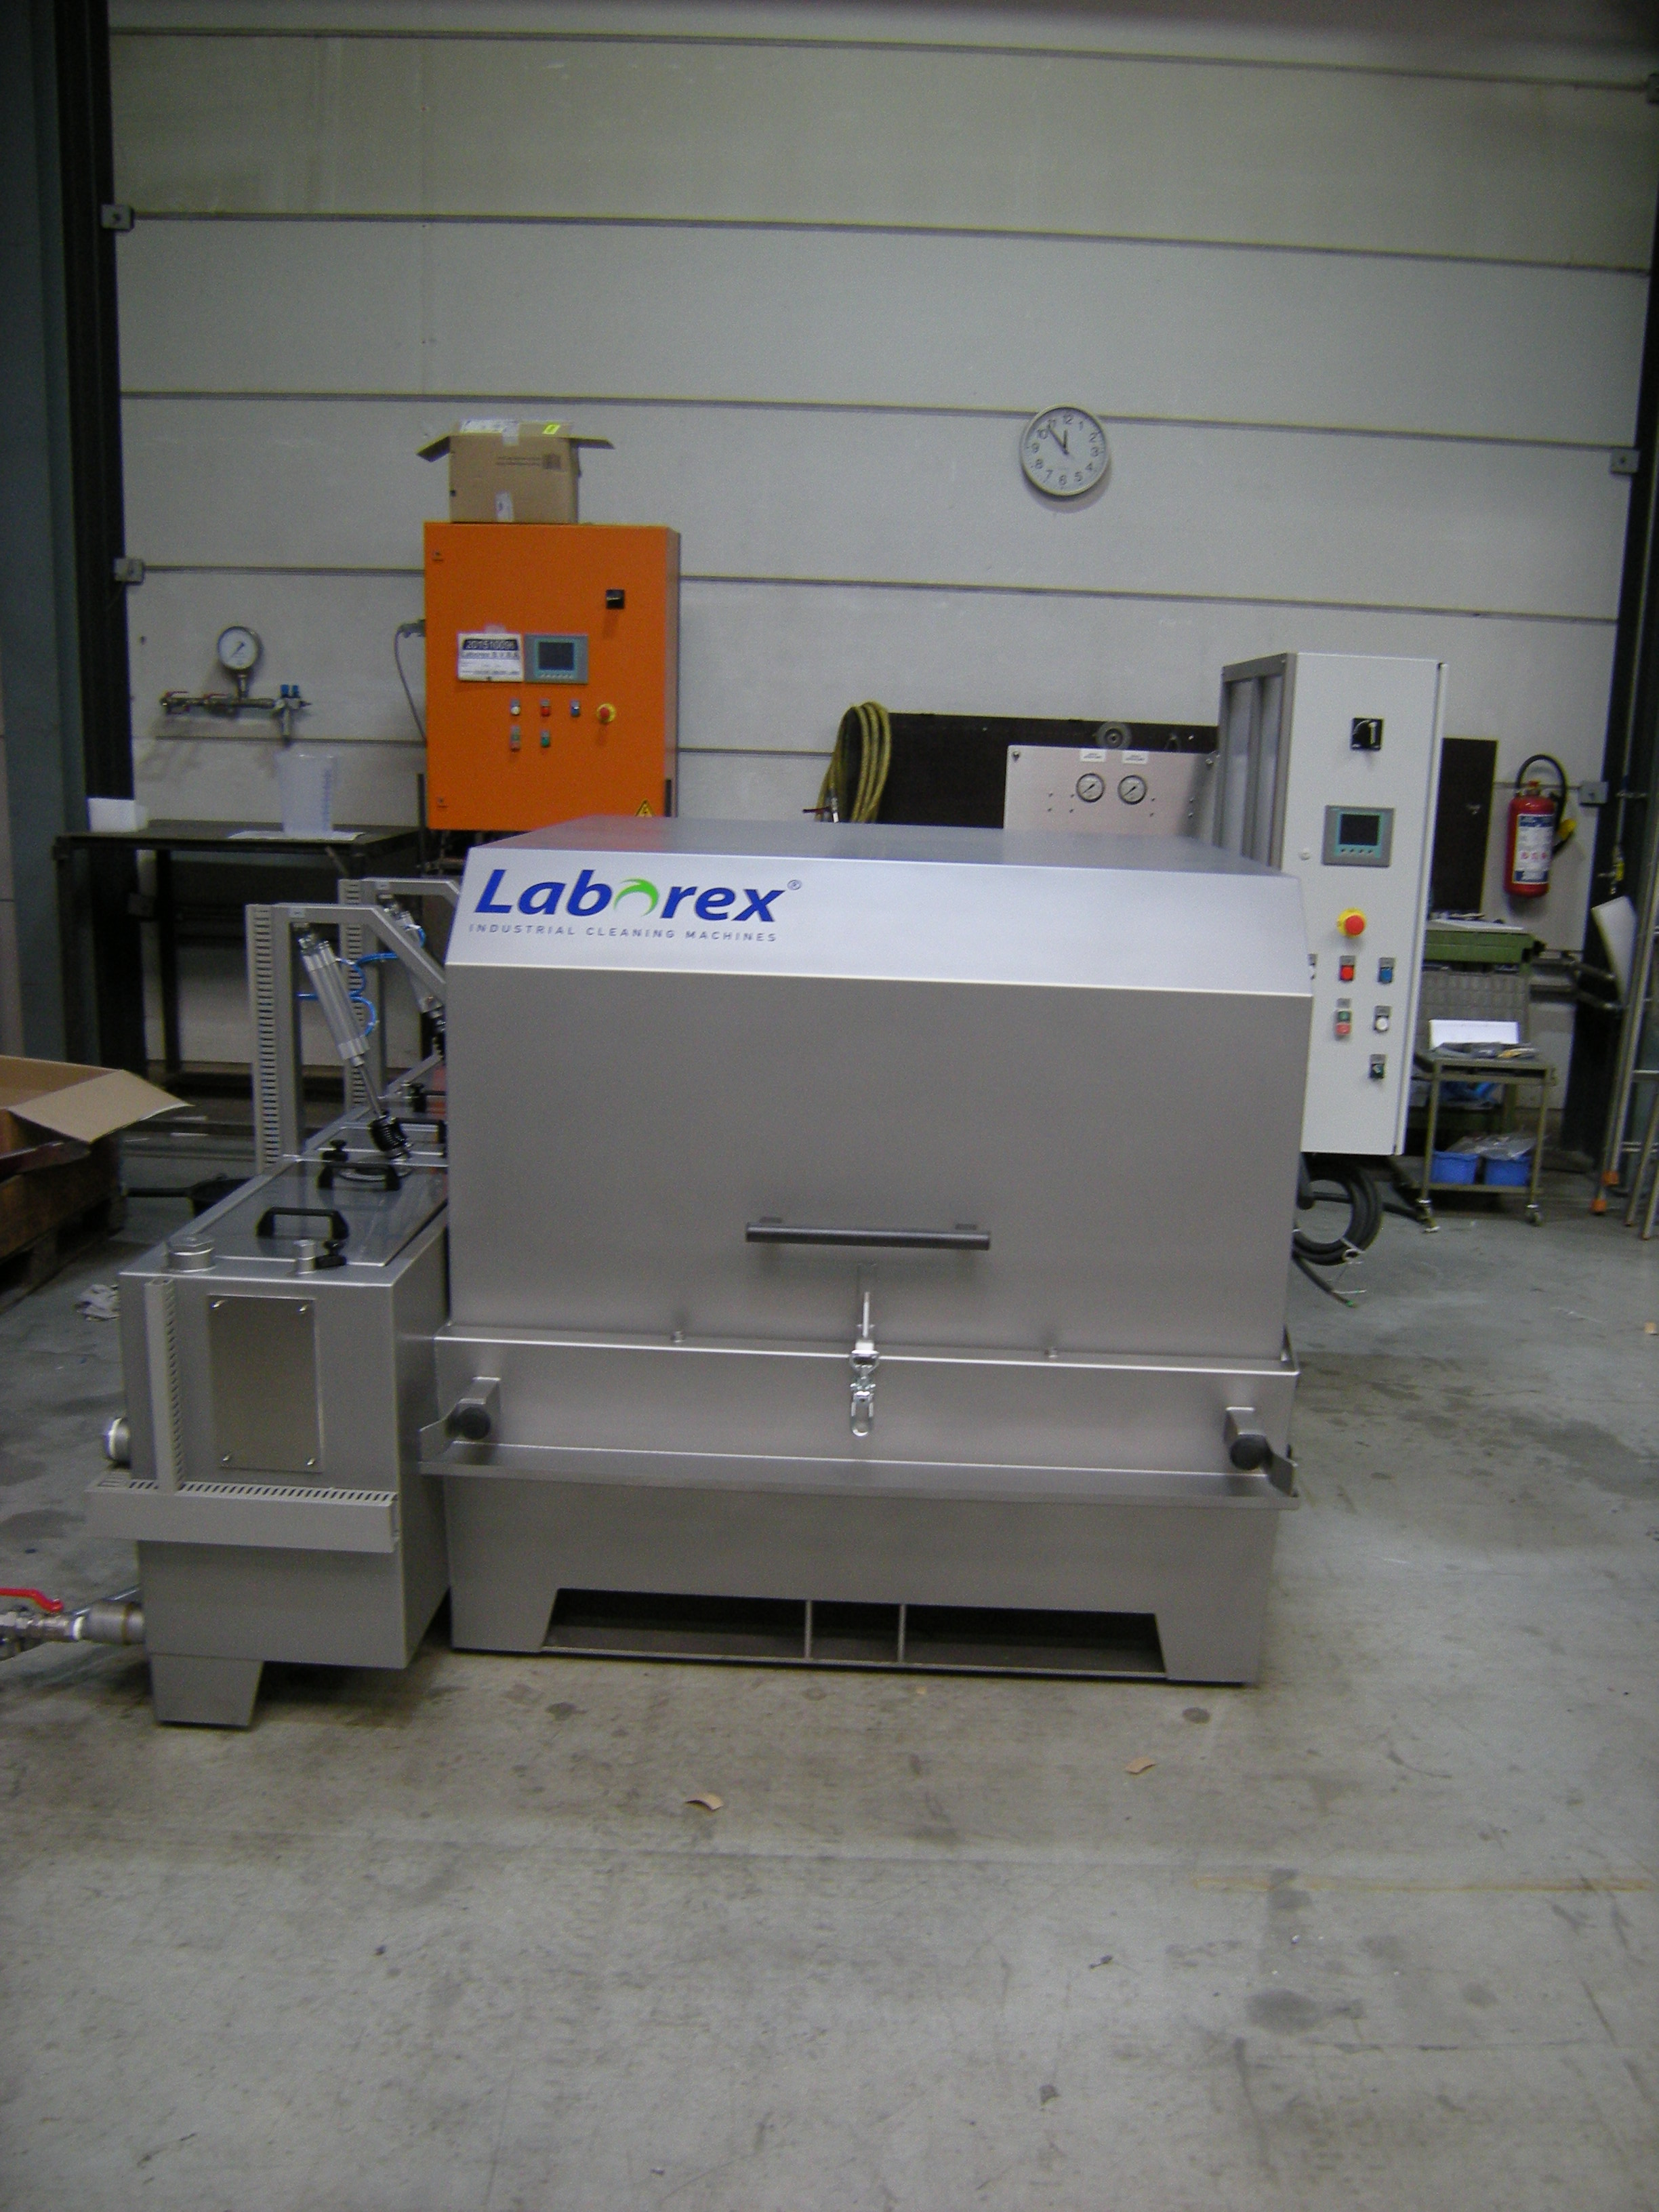 Small Parts Washing Machine For Cologne Laborexrail